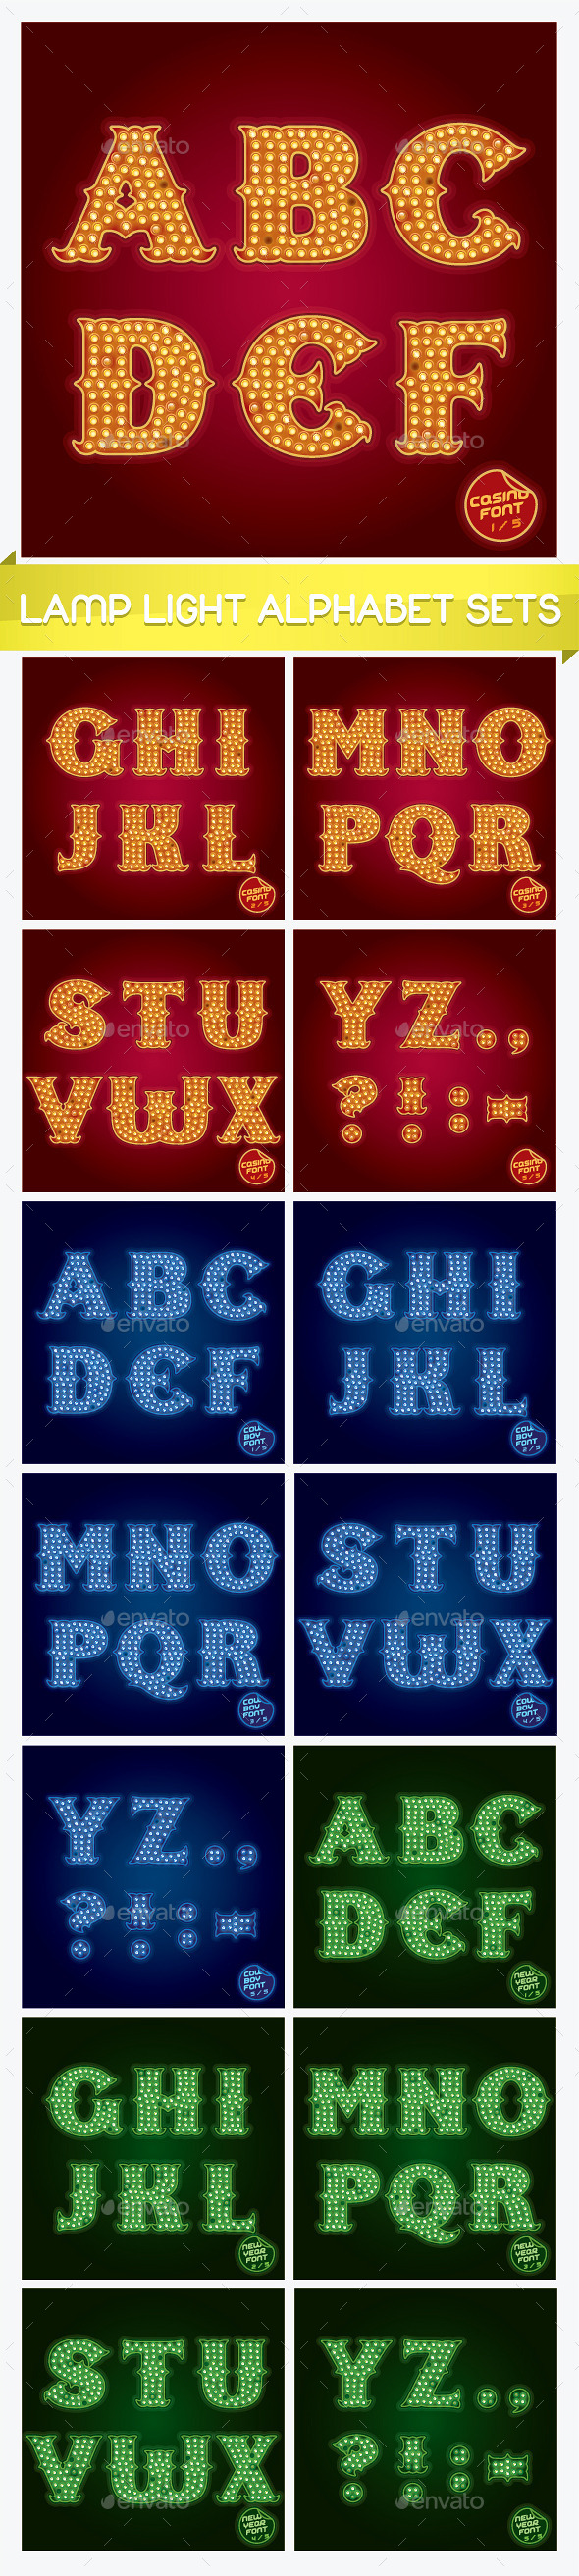 GraphicRiver Lamp Light Alphabet Sets 11909806